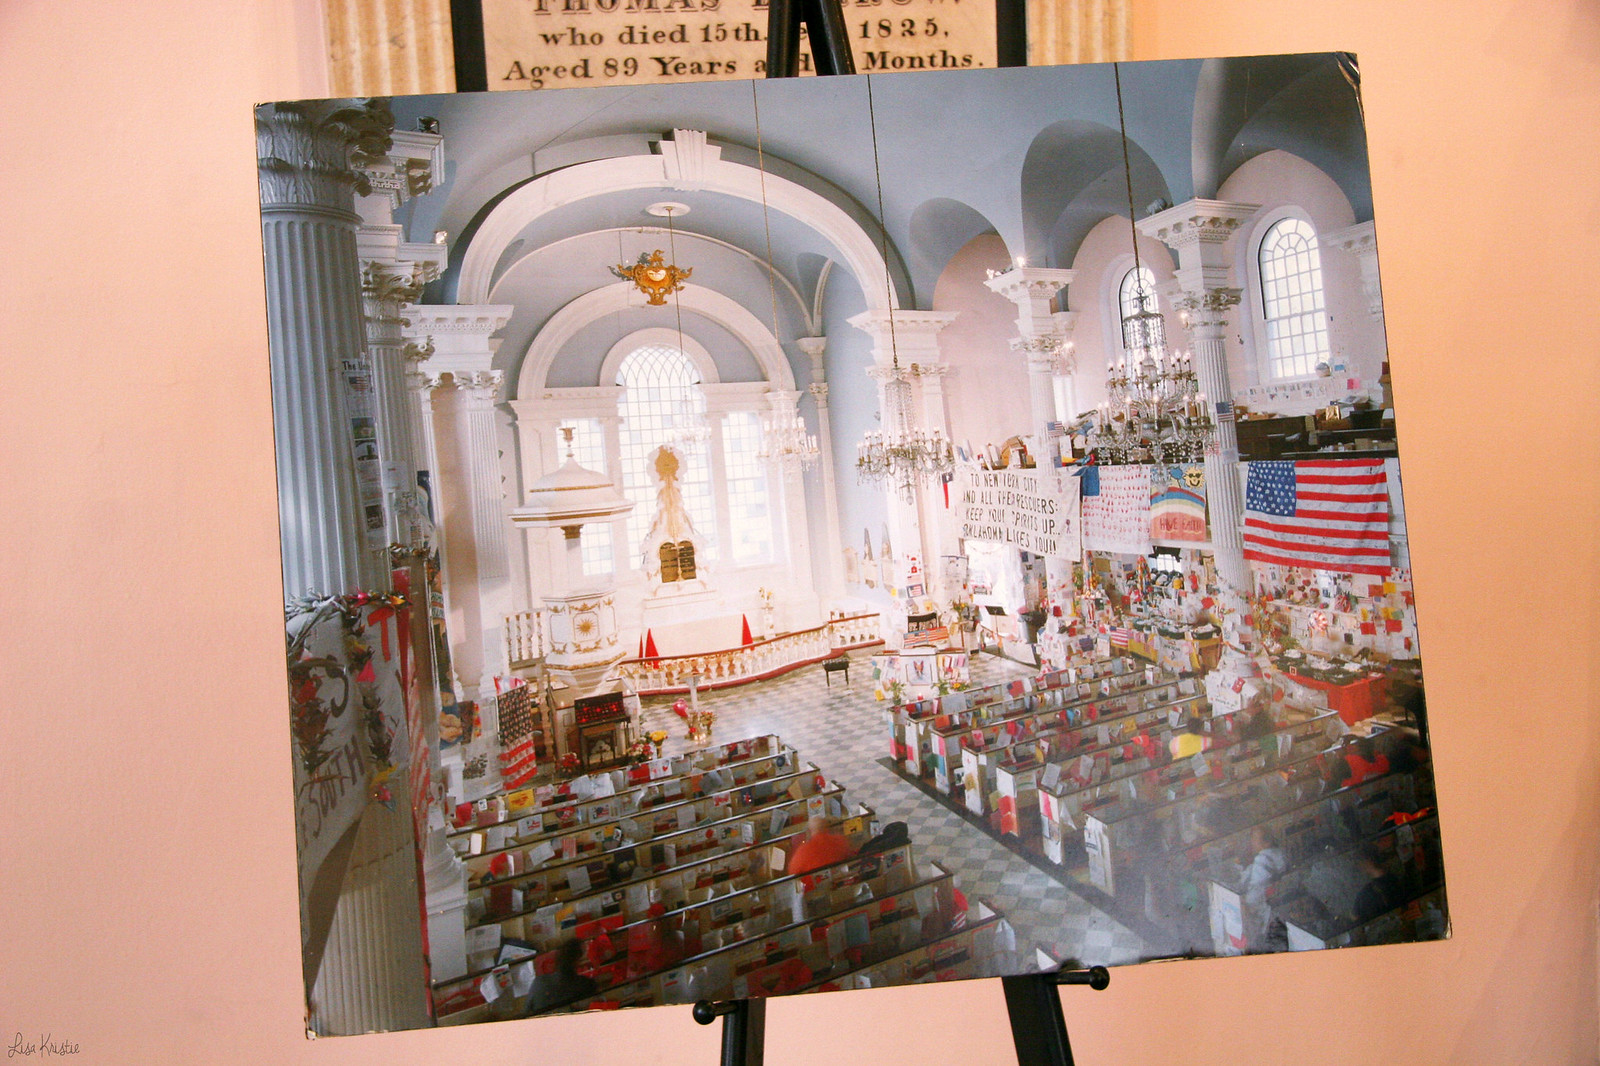 Saint Paul's Chapel church lower manhattan new york city inside interior exhibition 9/11 september 11th 2001 memorial photograph picture ground zero world trace center wtc